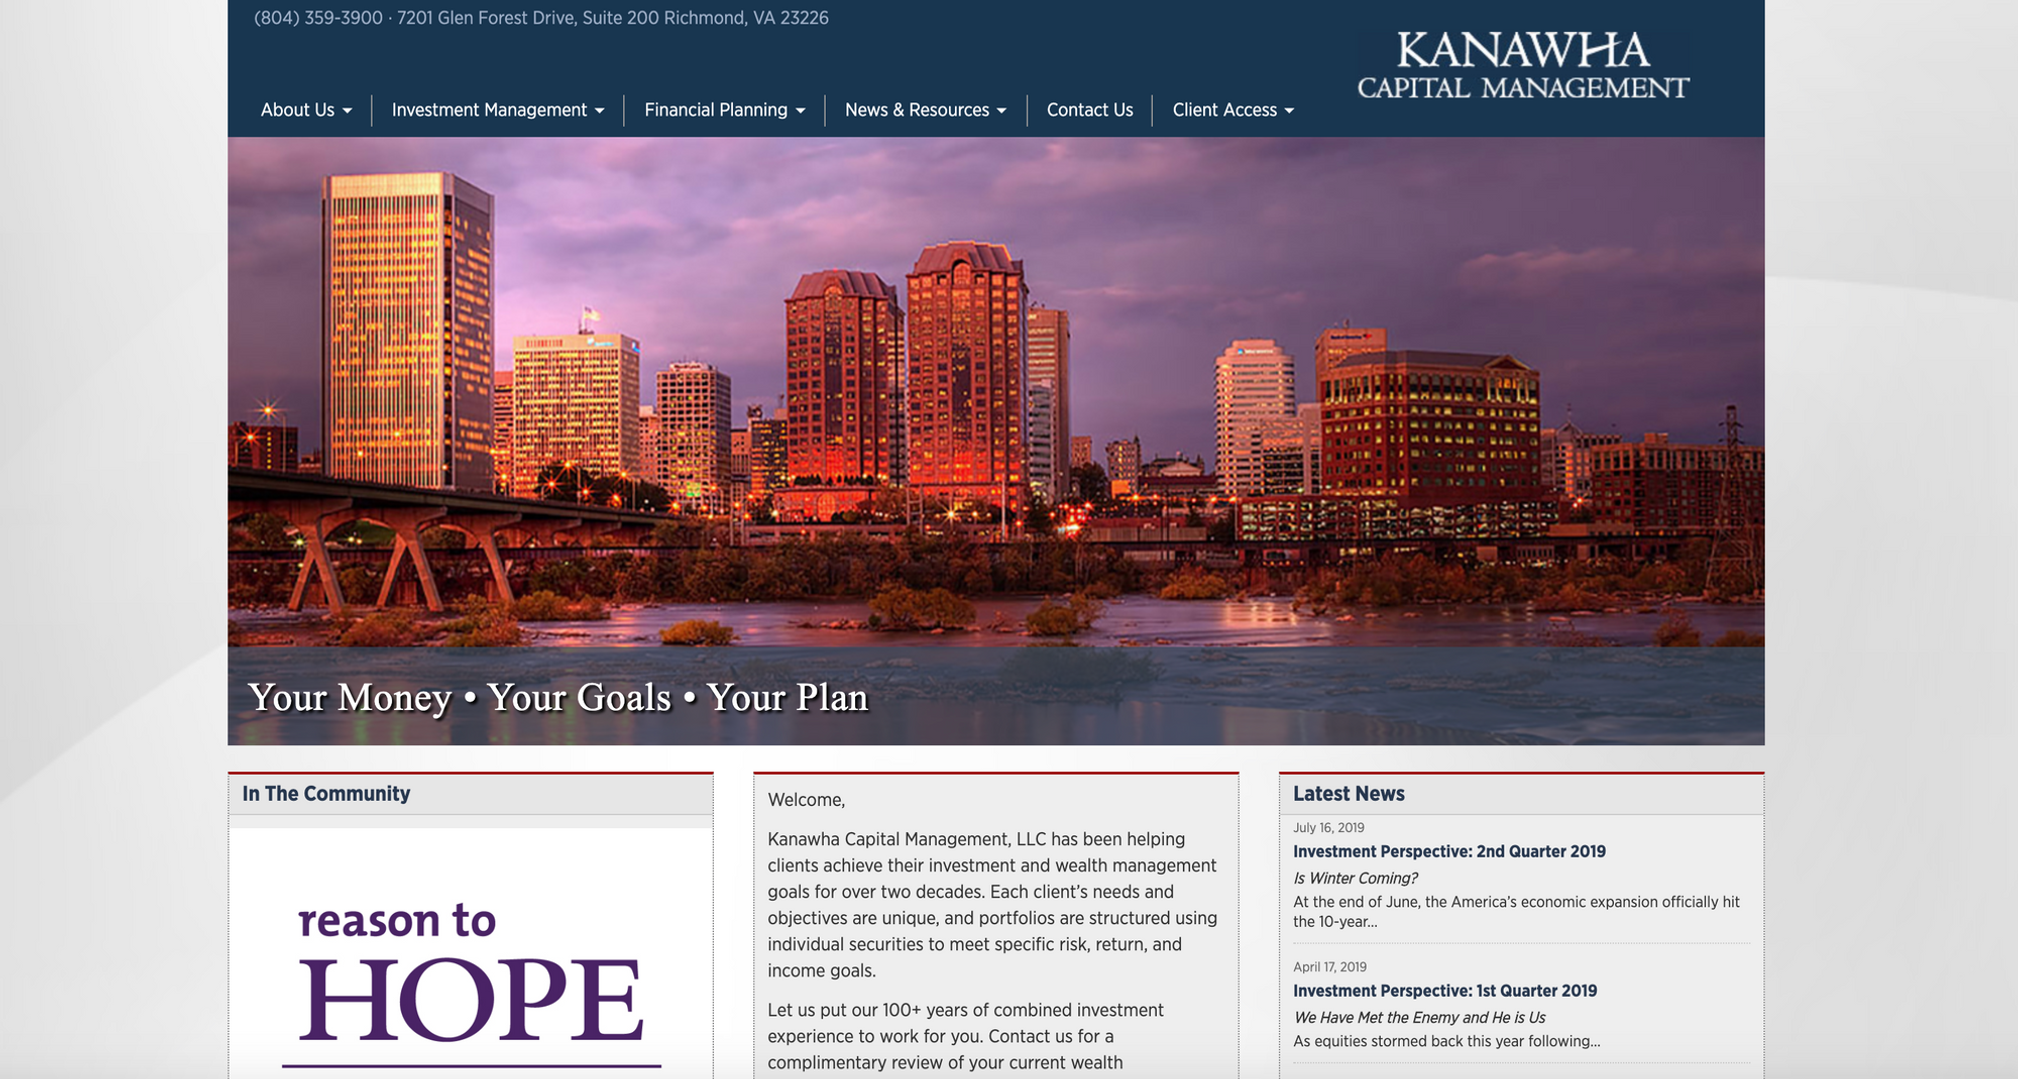 Kanawha Capital Management